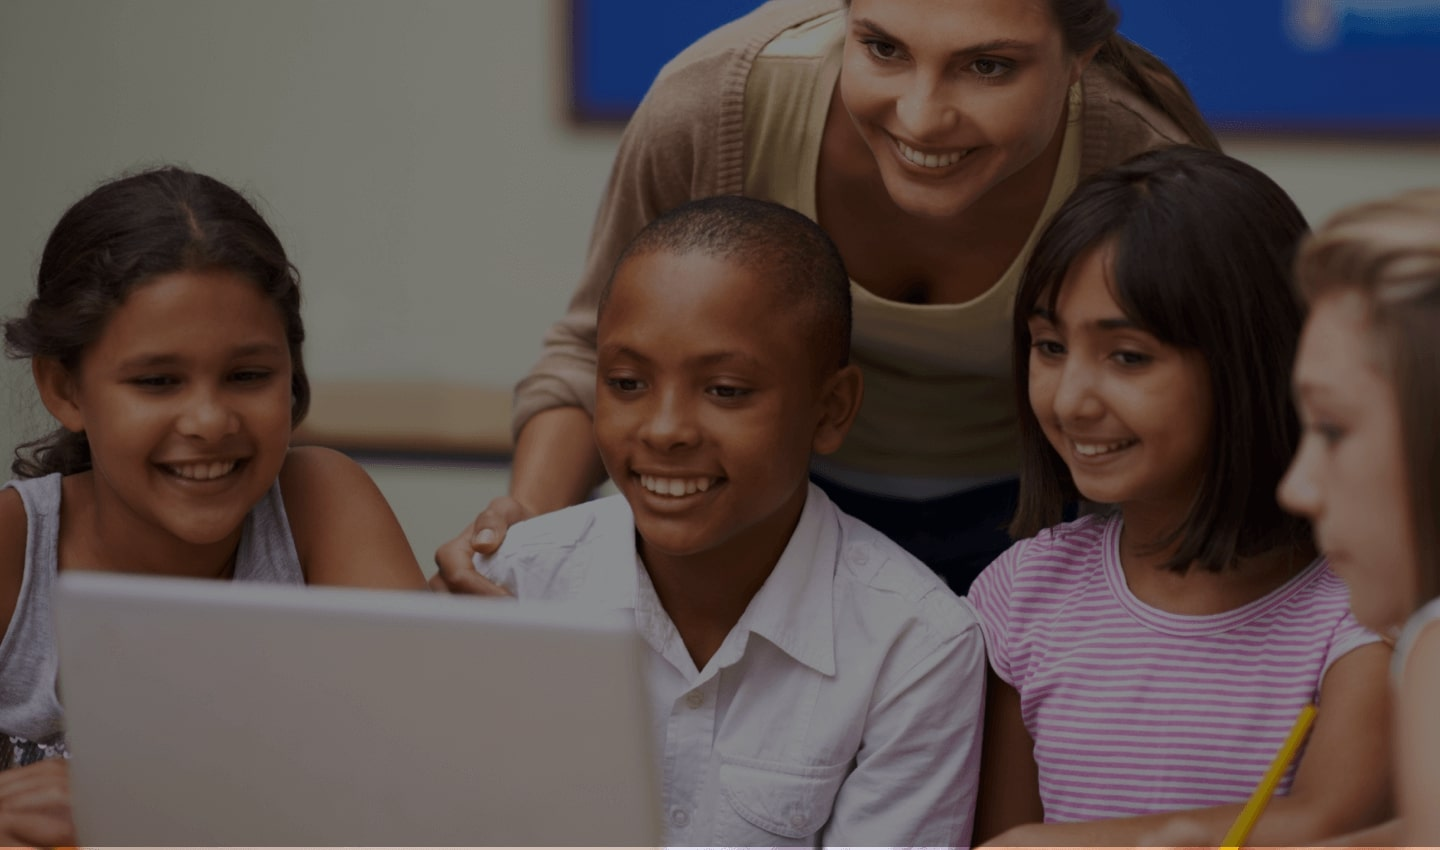 Smiling children with an women looking at laptop